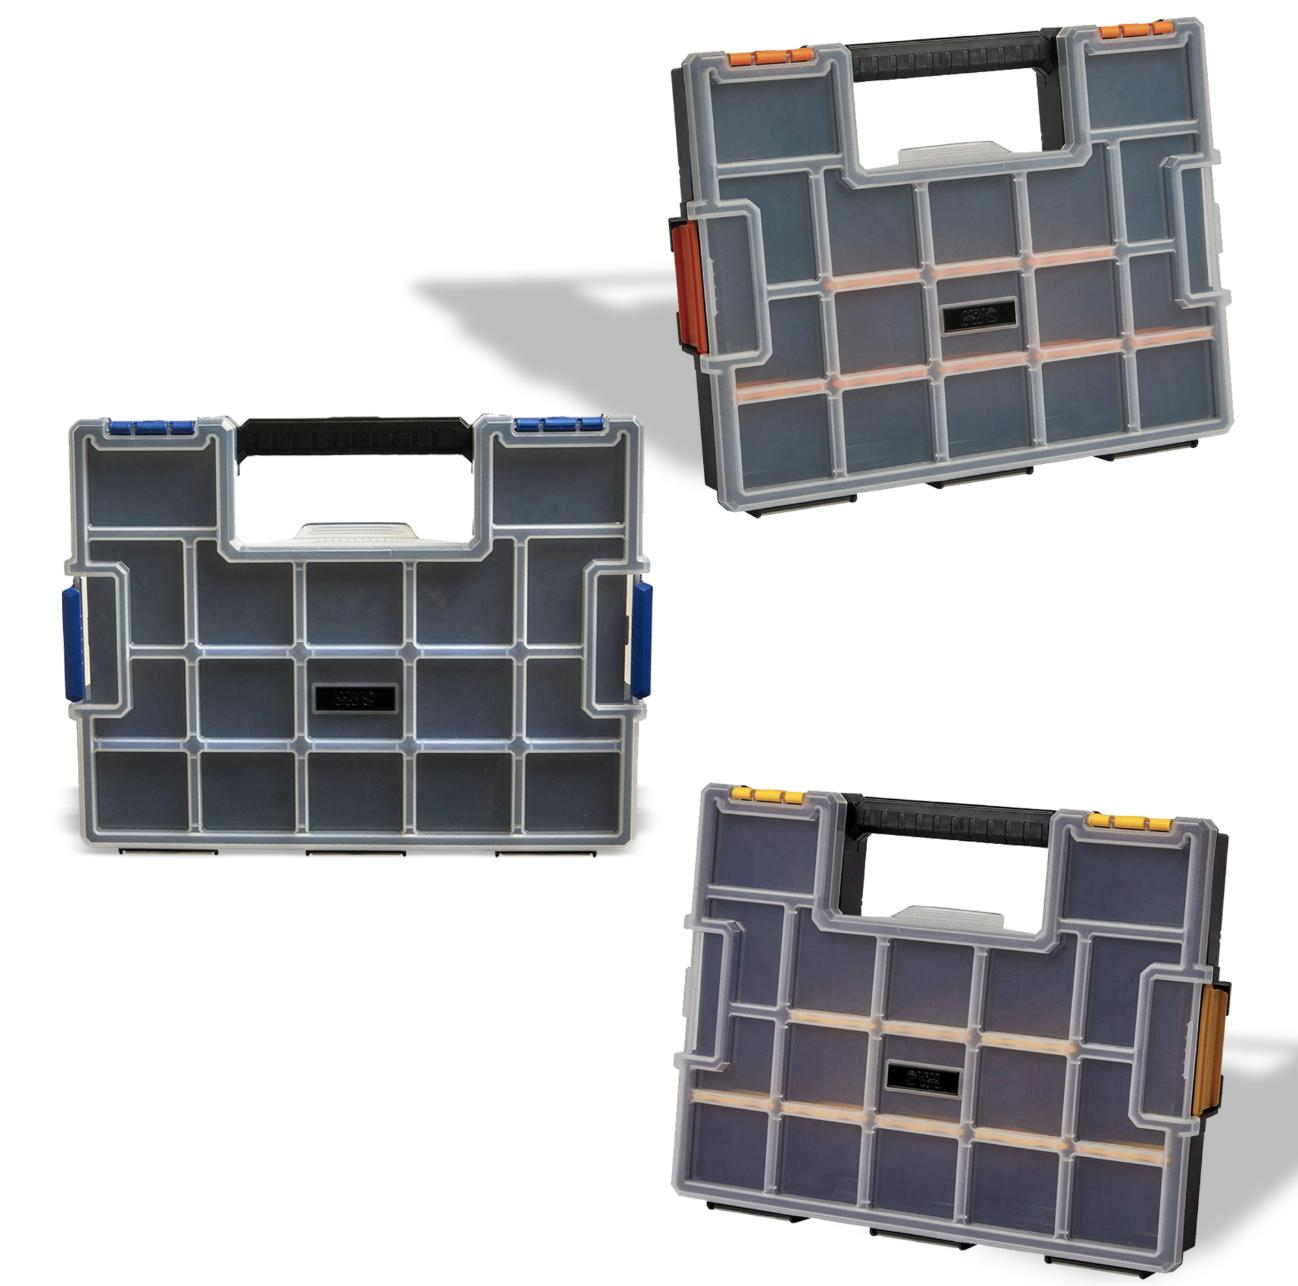 15 Wall Small Parts Organizer Colors